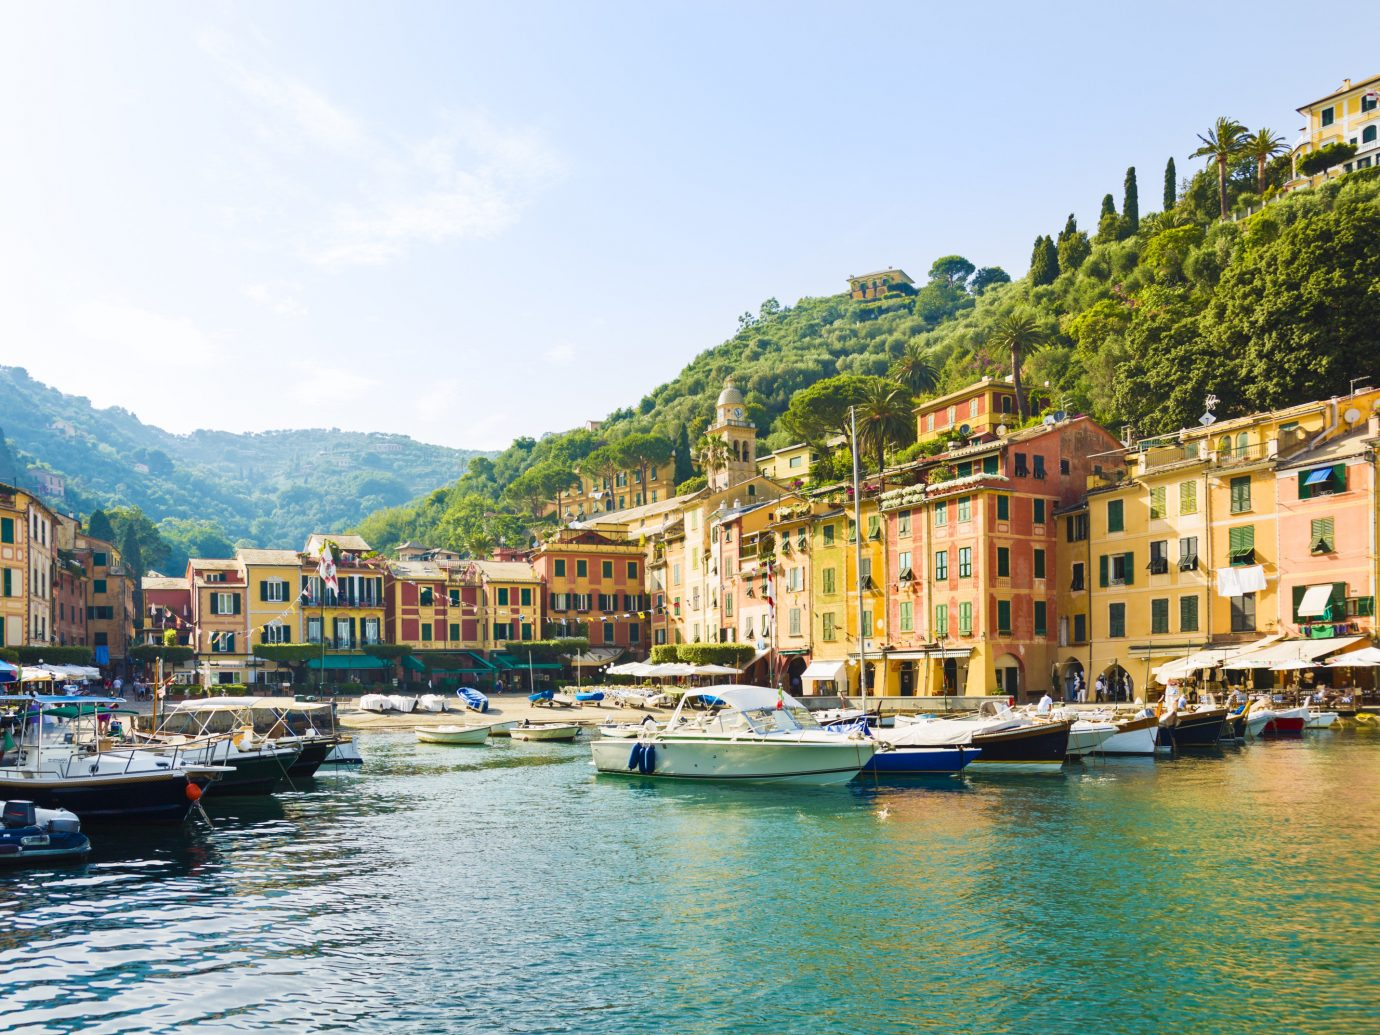 Italy Trip Ideas waterway water transportation water sky City reflection Harbor Town Canal marina tourism River Lake Boat Sea bay port channel Coast tree mountain